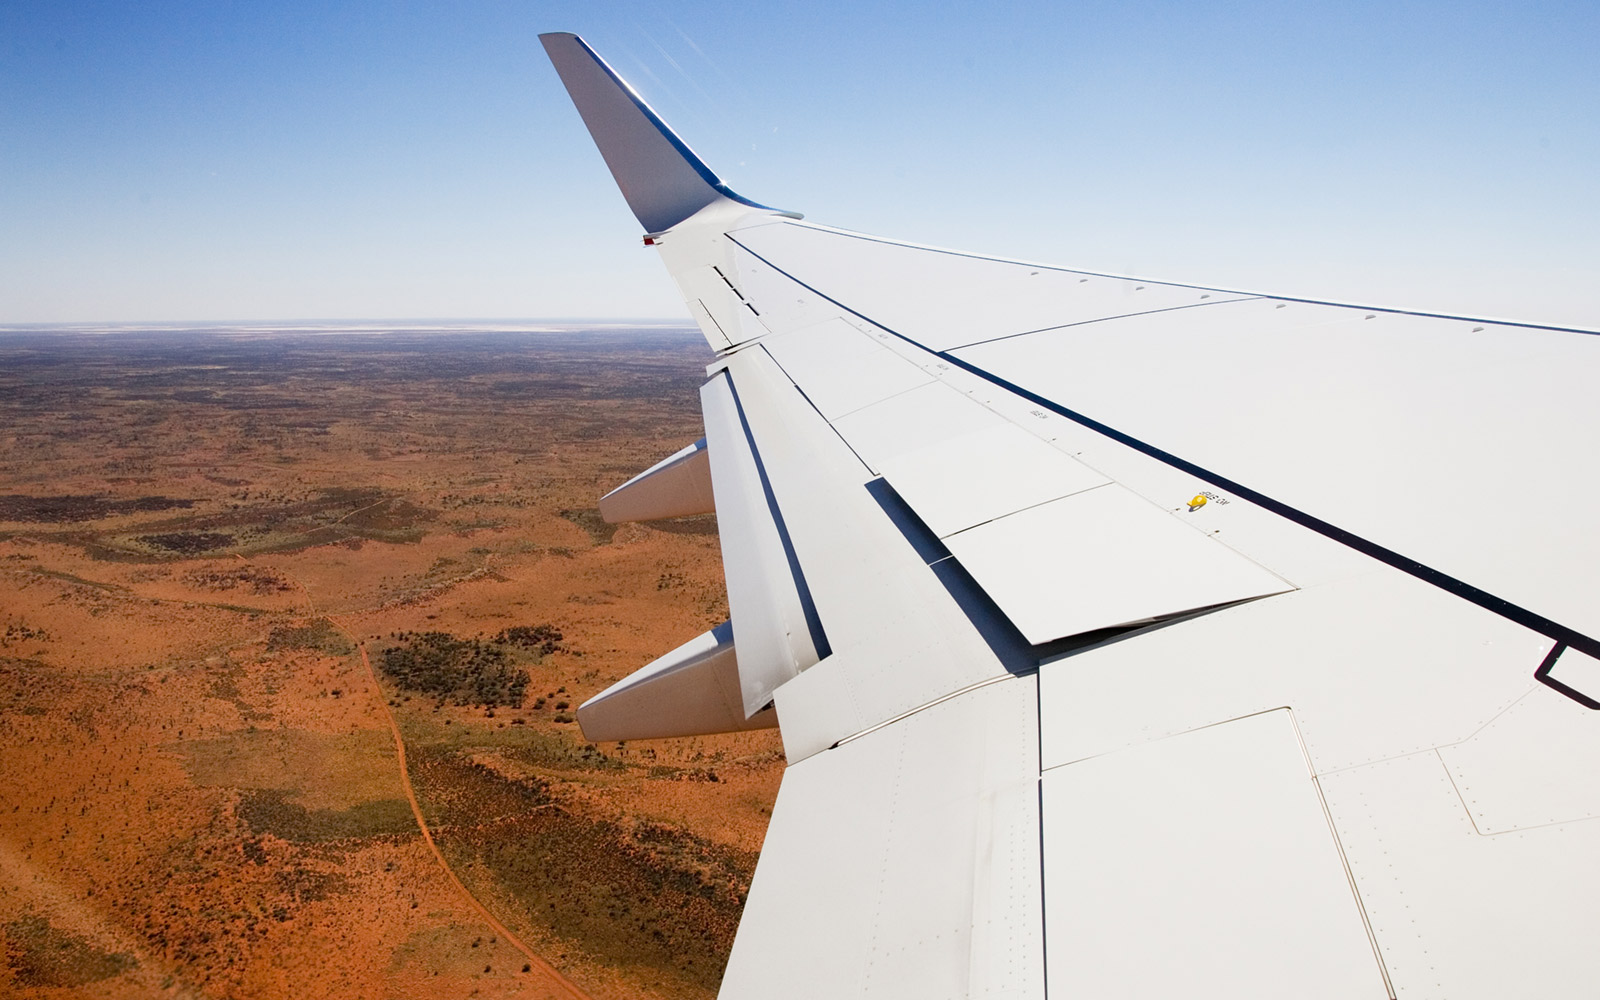 Airplane, Northern Territory, Australia